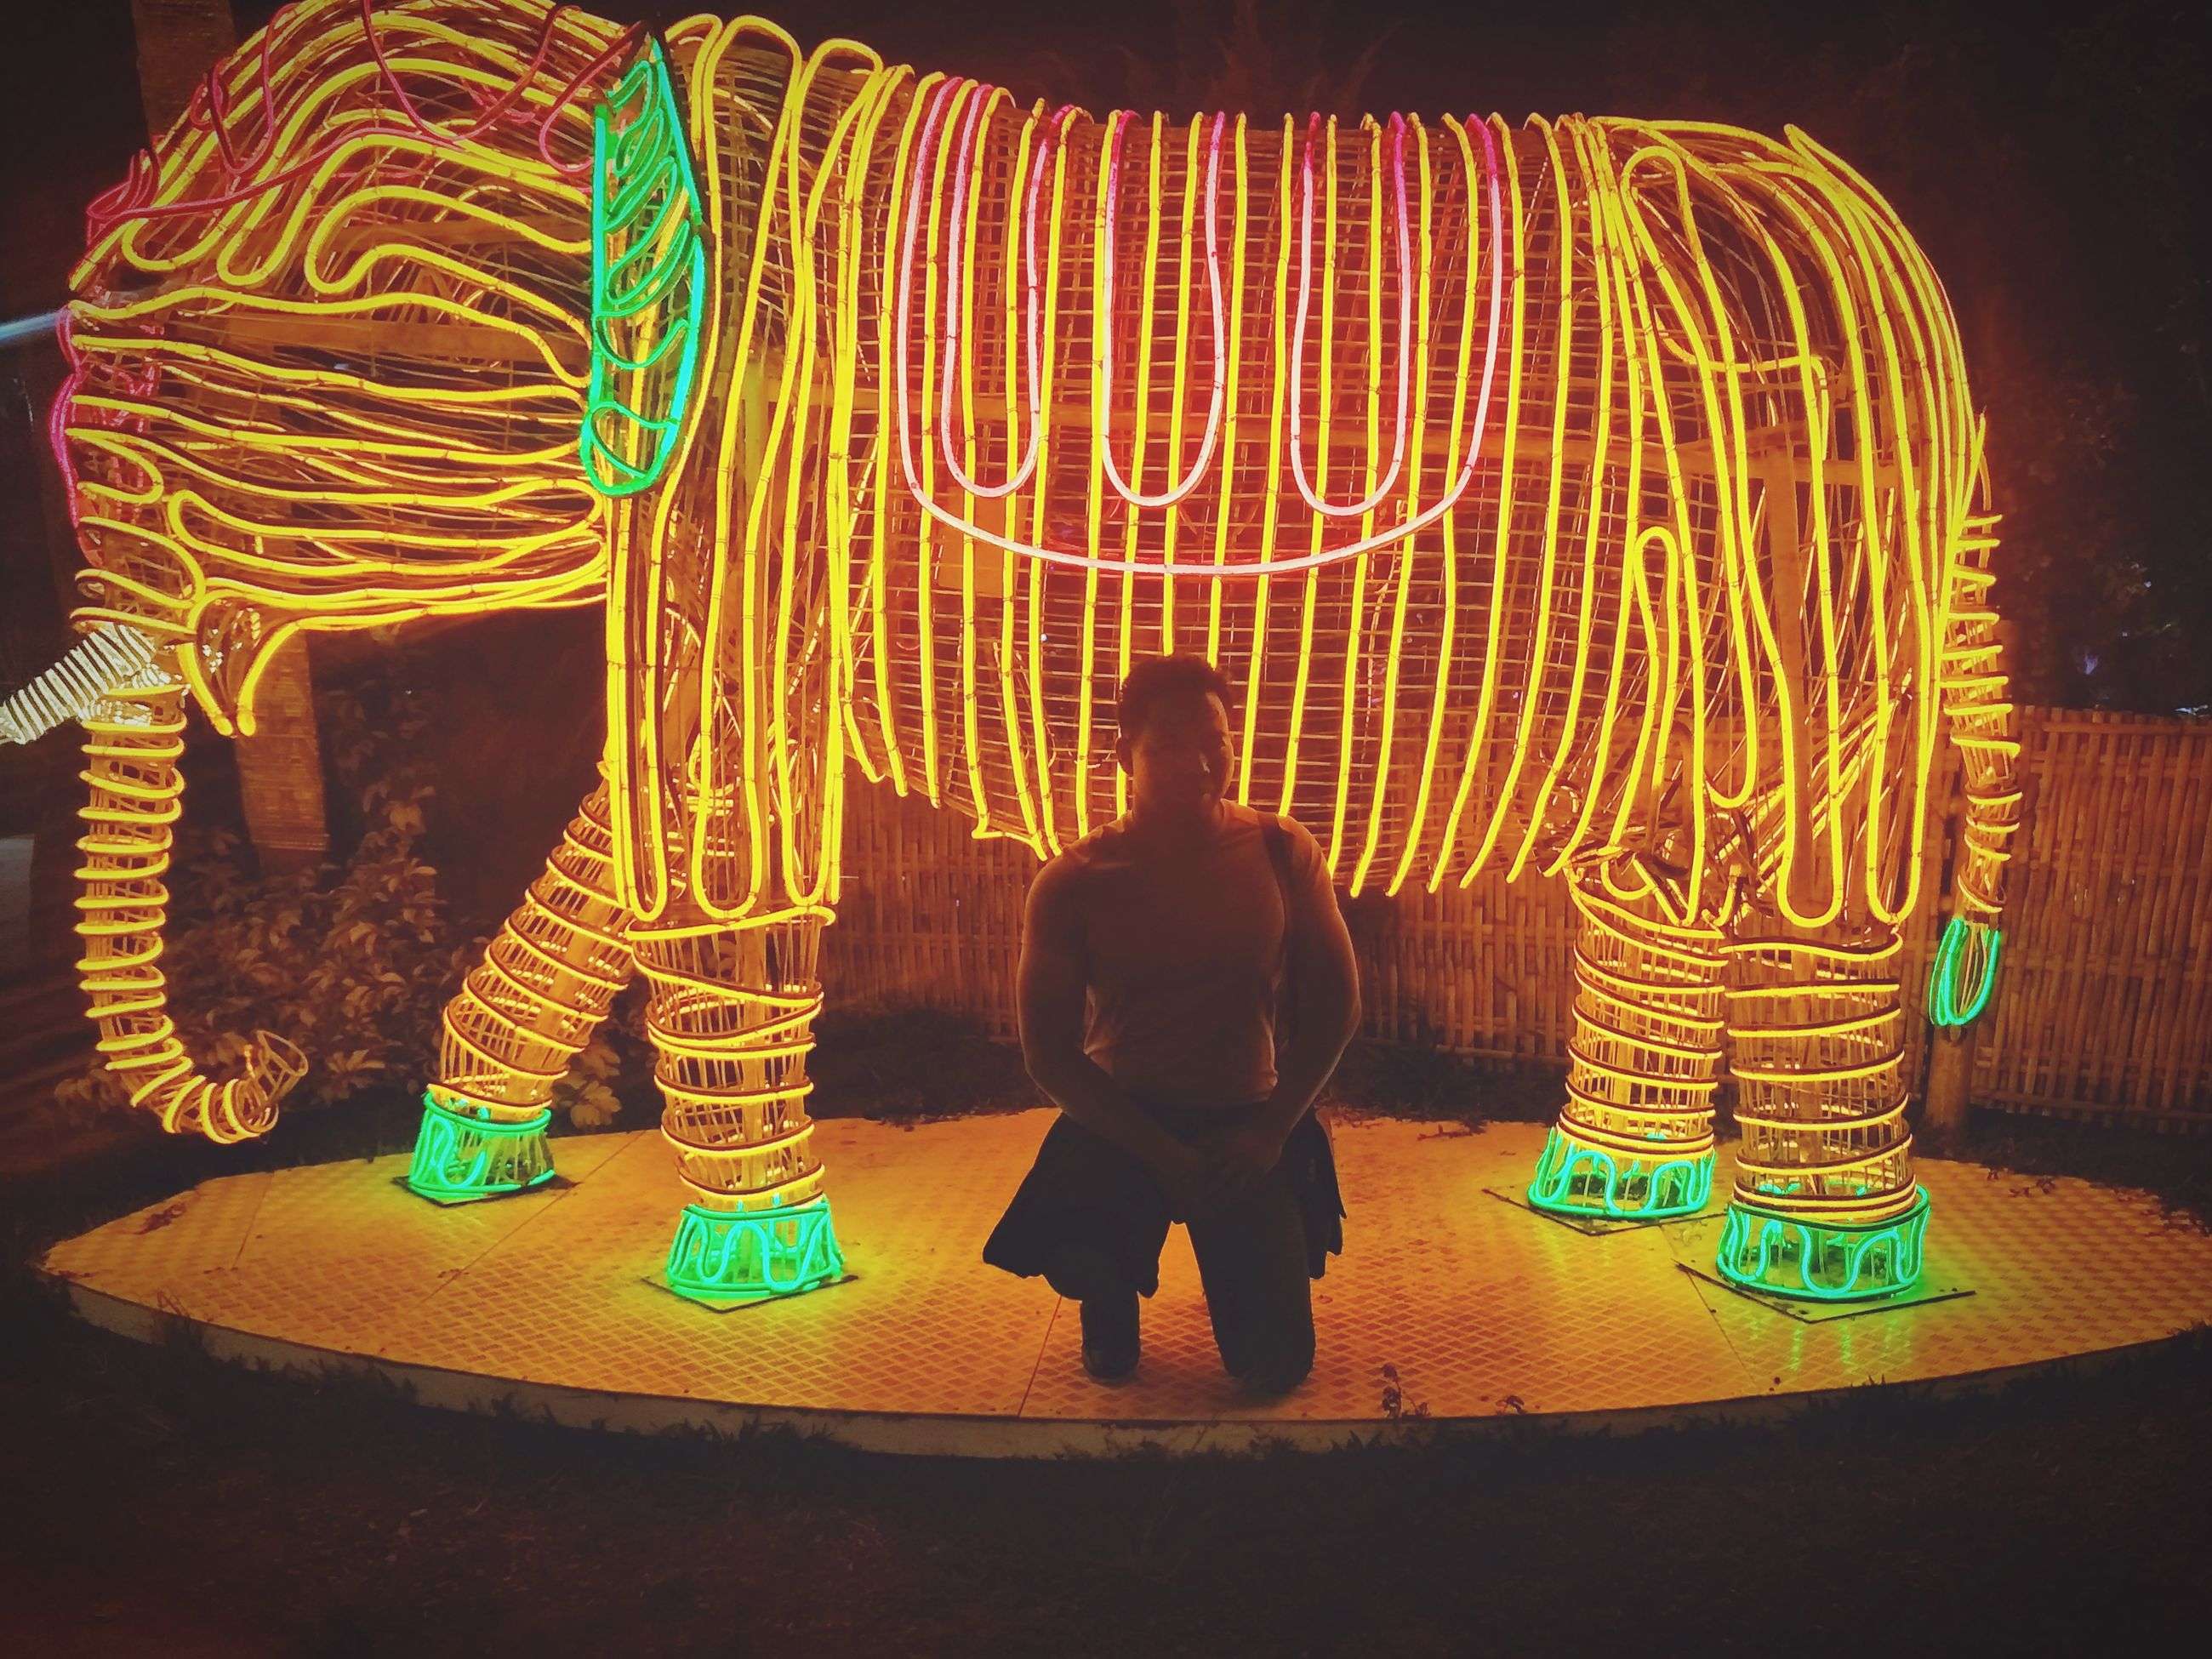 illuminated, rear view, real people, one person, glowing, night, long exposure, full length, creativity, light painting, arts culture and entertainment, lifestyles, men, standing, leisure activity, motion, art and craft, multi colored, light trail, light